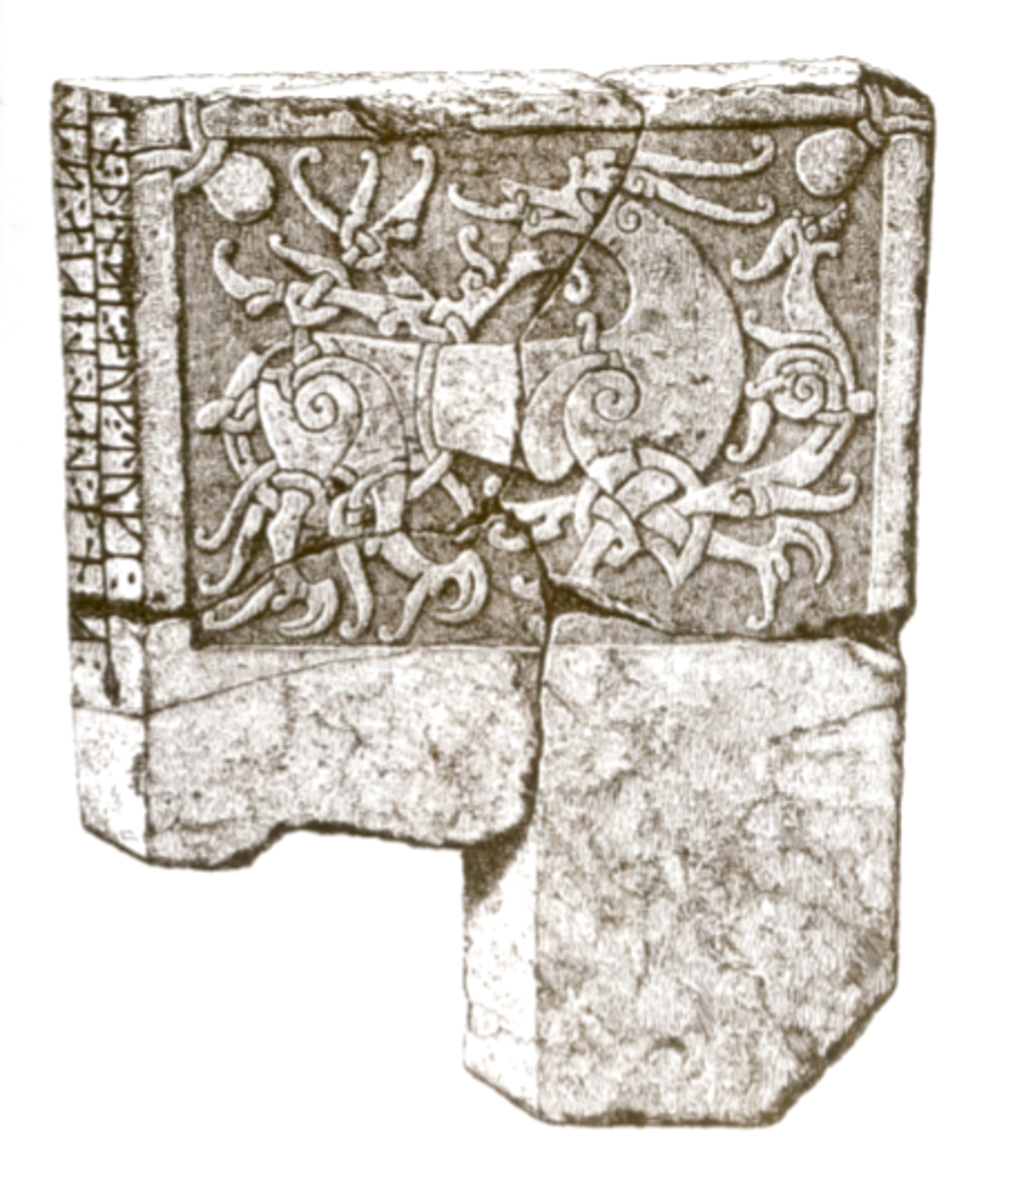 Lithograph of the carving on the St. Paul's Tombstone.